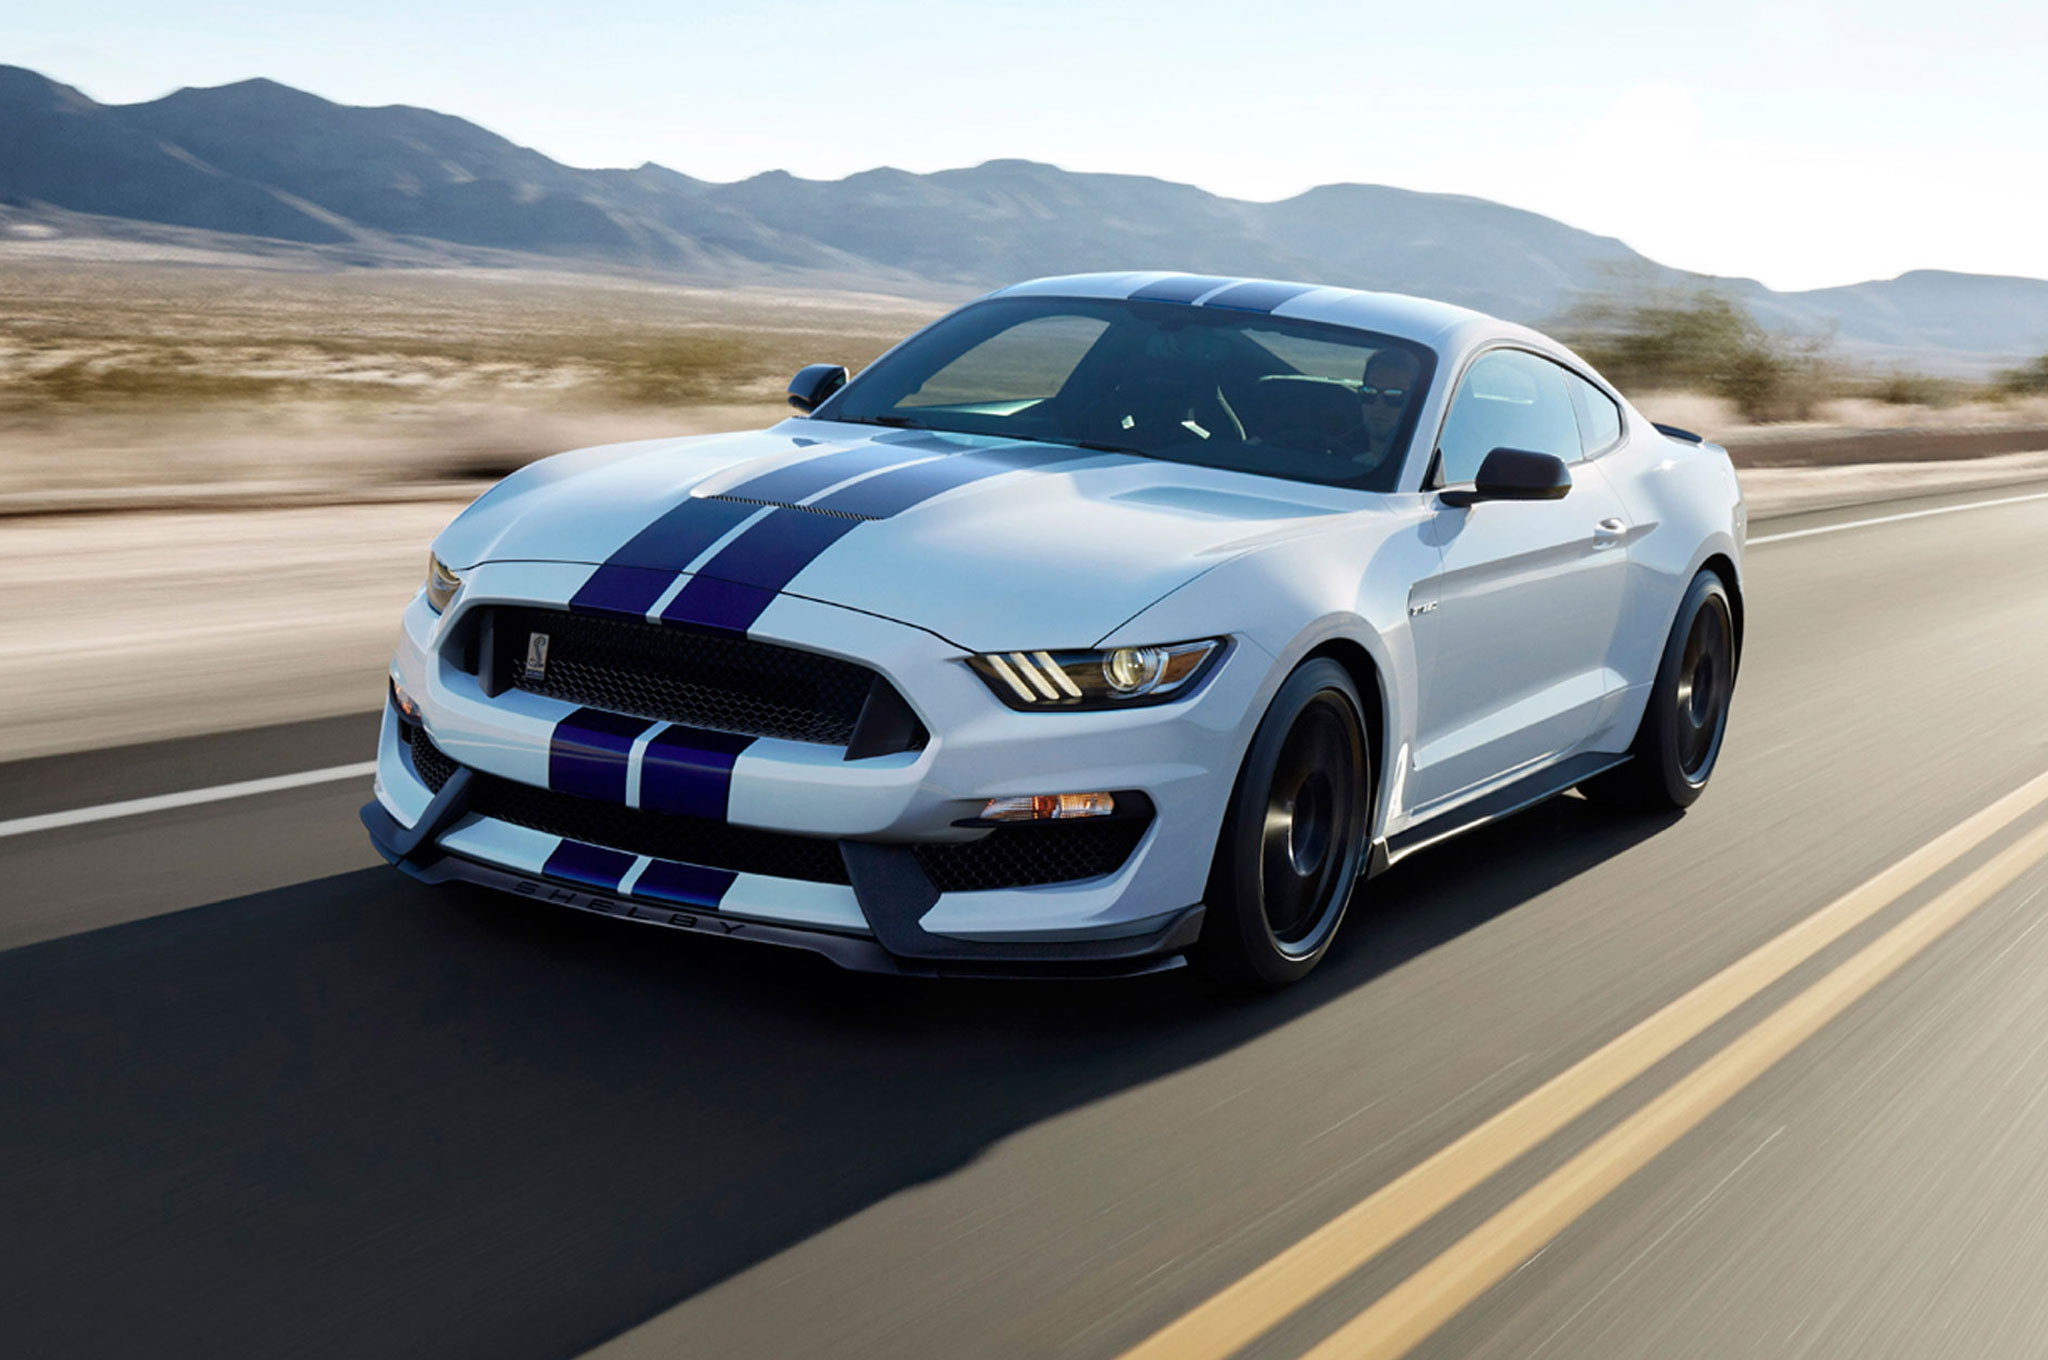 2016 Ford Shelby GT350 Mustang Lead Final